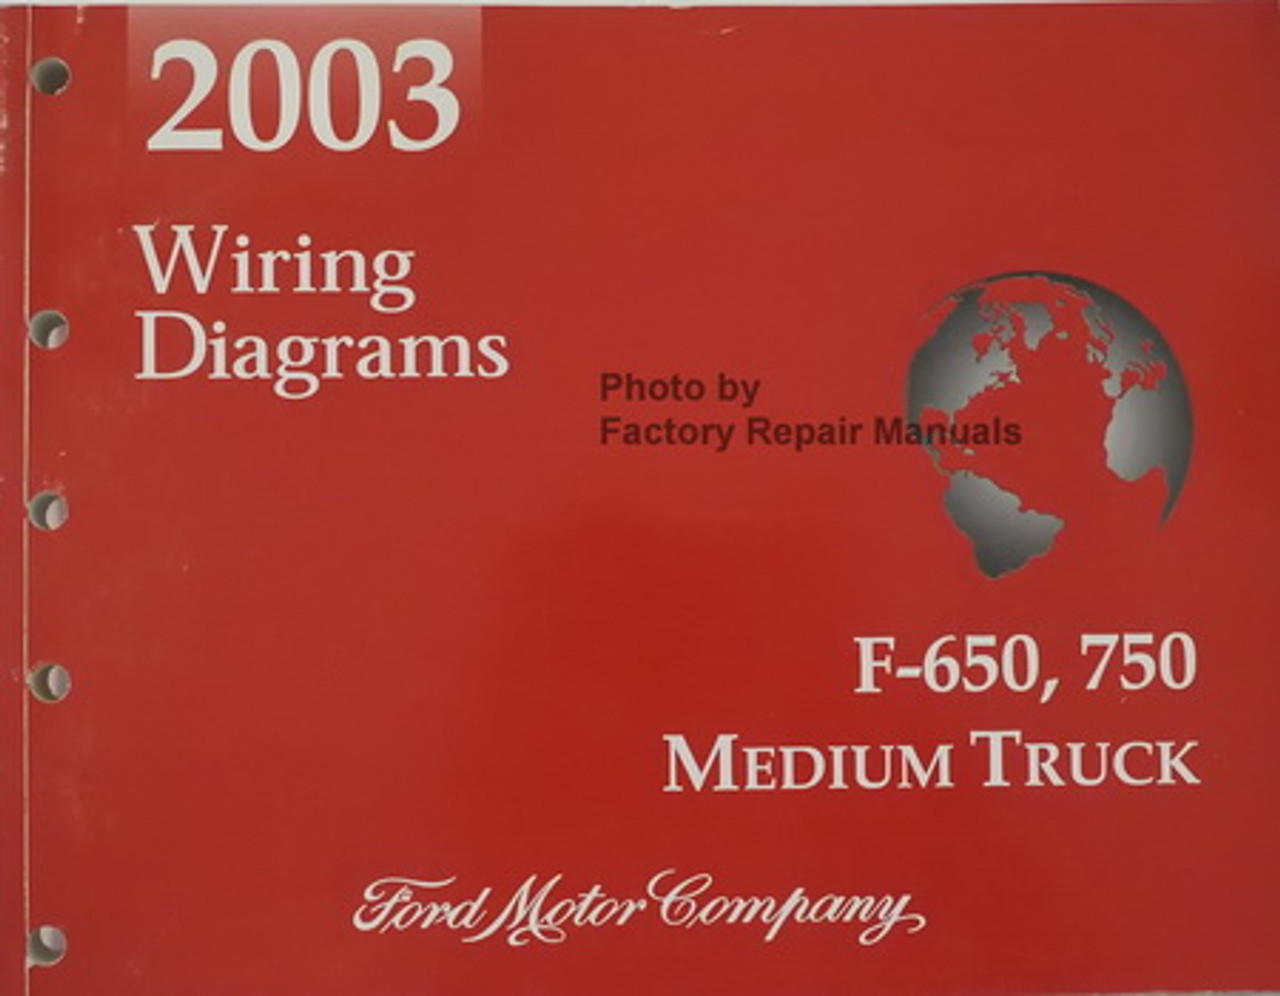 2003 Ford F650 F750 Medium Duty Truck Electrical Wiring Diagrams - Factory  Repair Manuals | Ford F 750 Wiring Diagram |  | Factory Repair Manuals